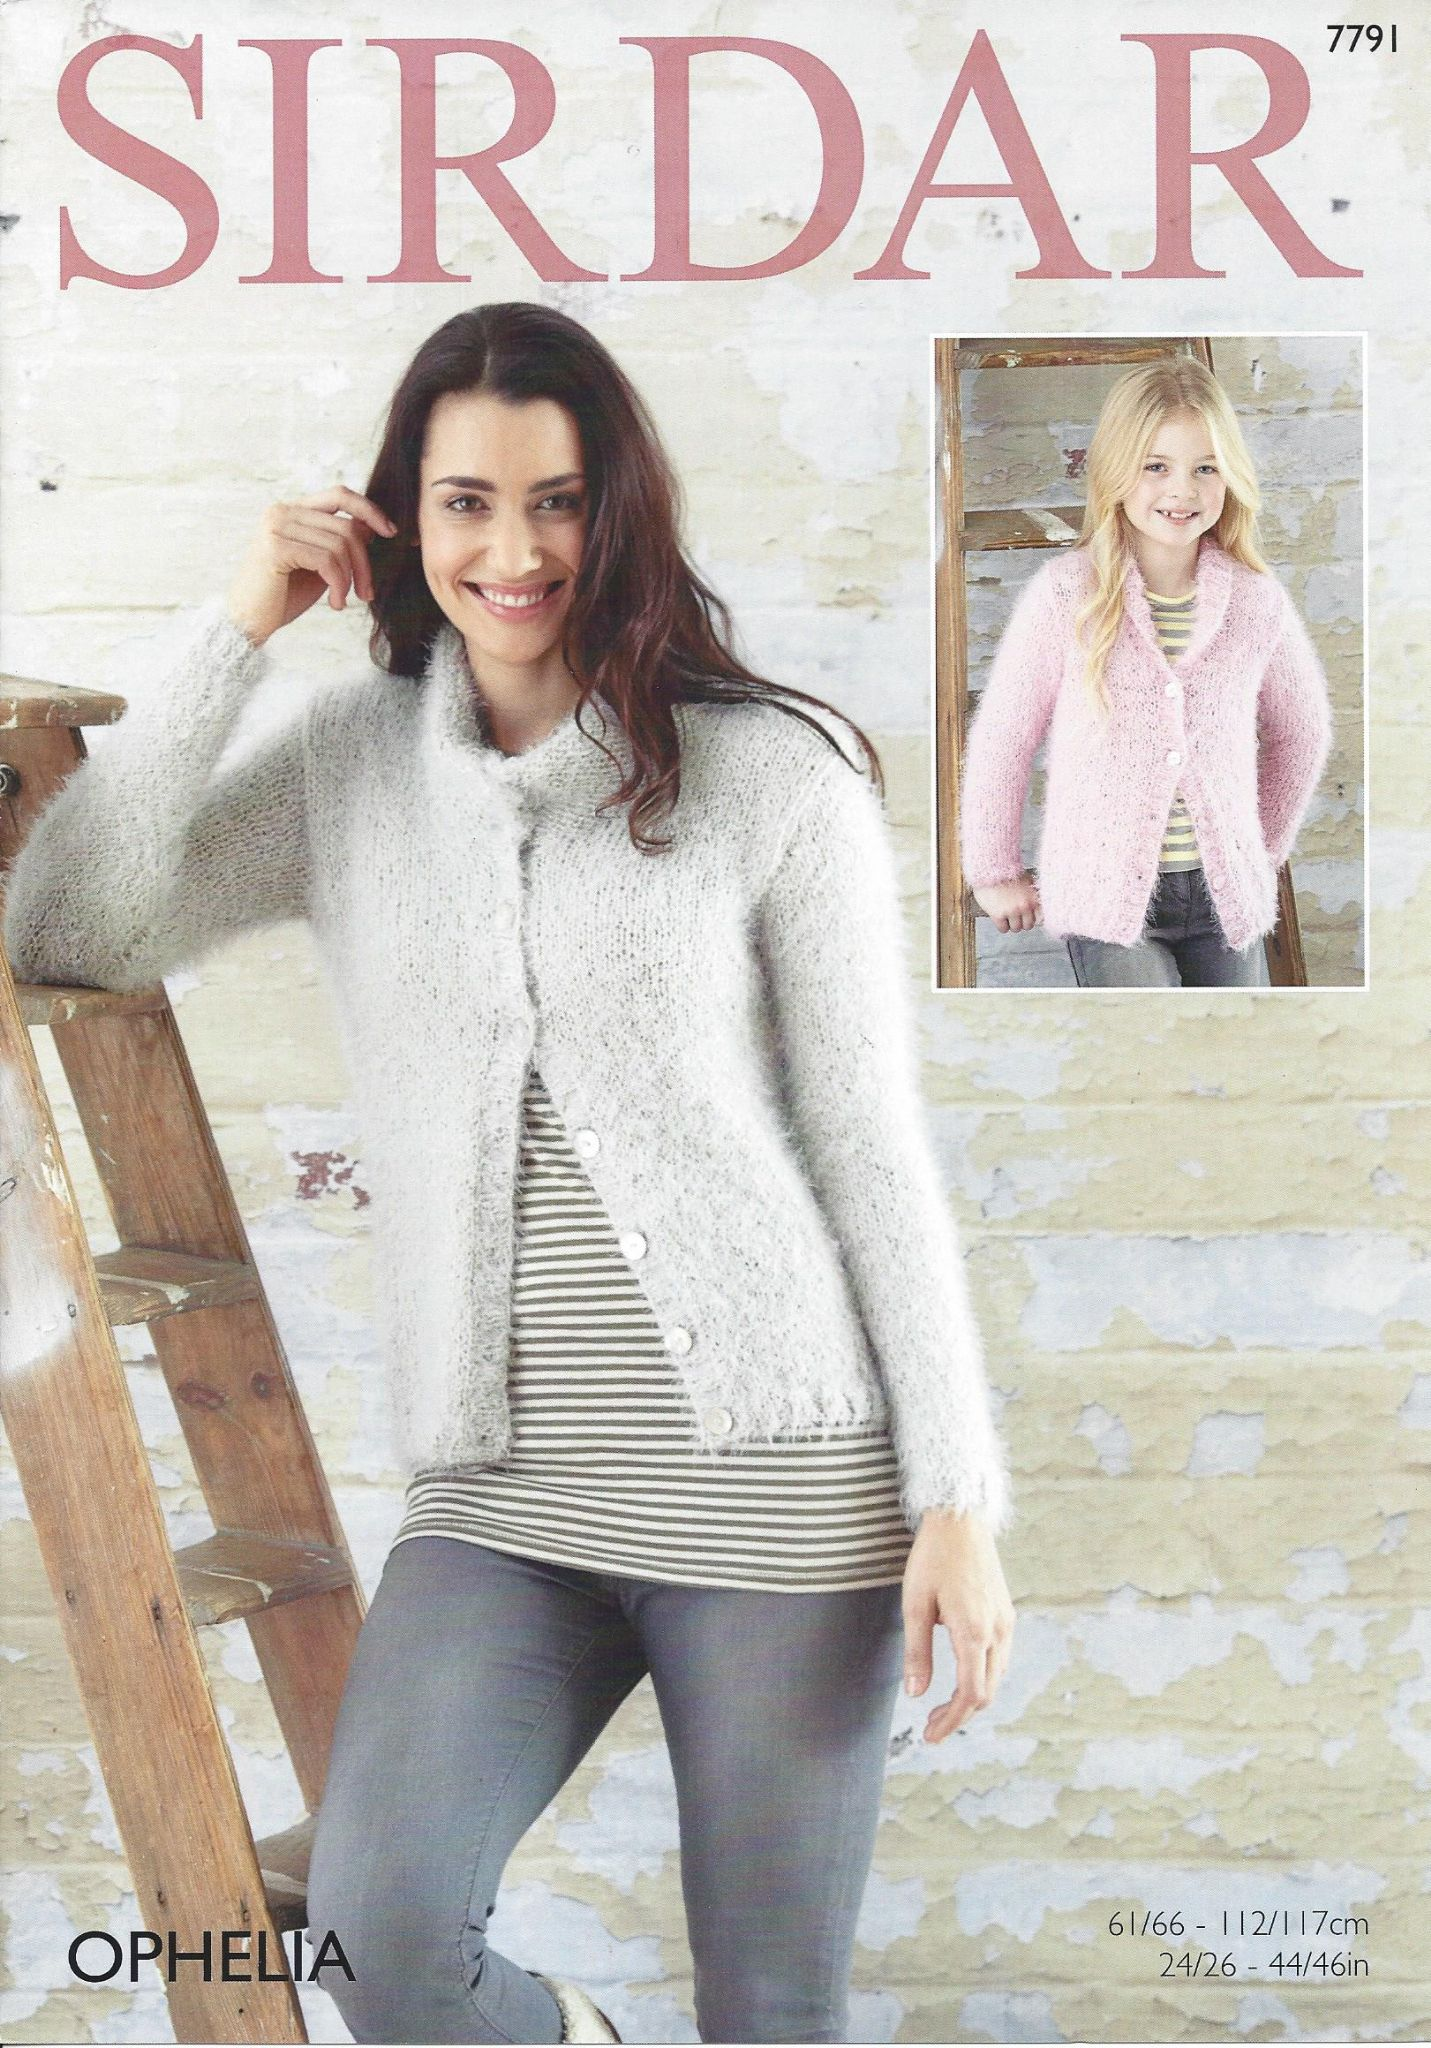 Sirdar Chunky Knitting Patterns Ladies Cardigans: Sirdar ladies ...